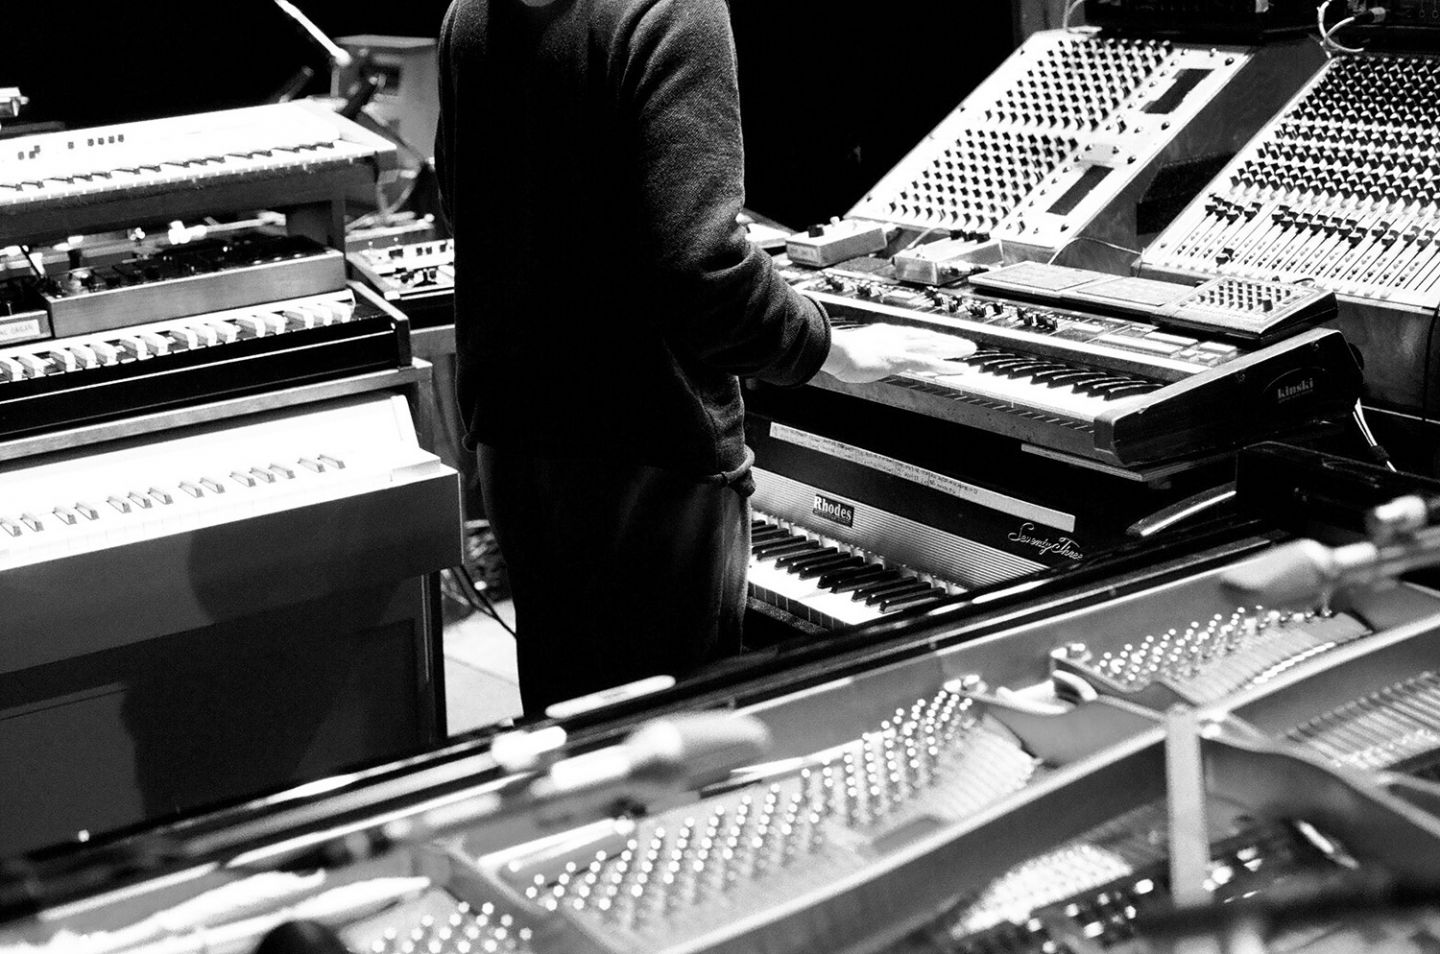 Lindsay Interview | Nils Frahm on Improvising Life and Music in Berlin| Photo by Beth Wilkinson for Lindsay